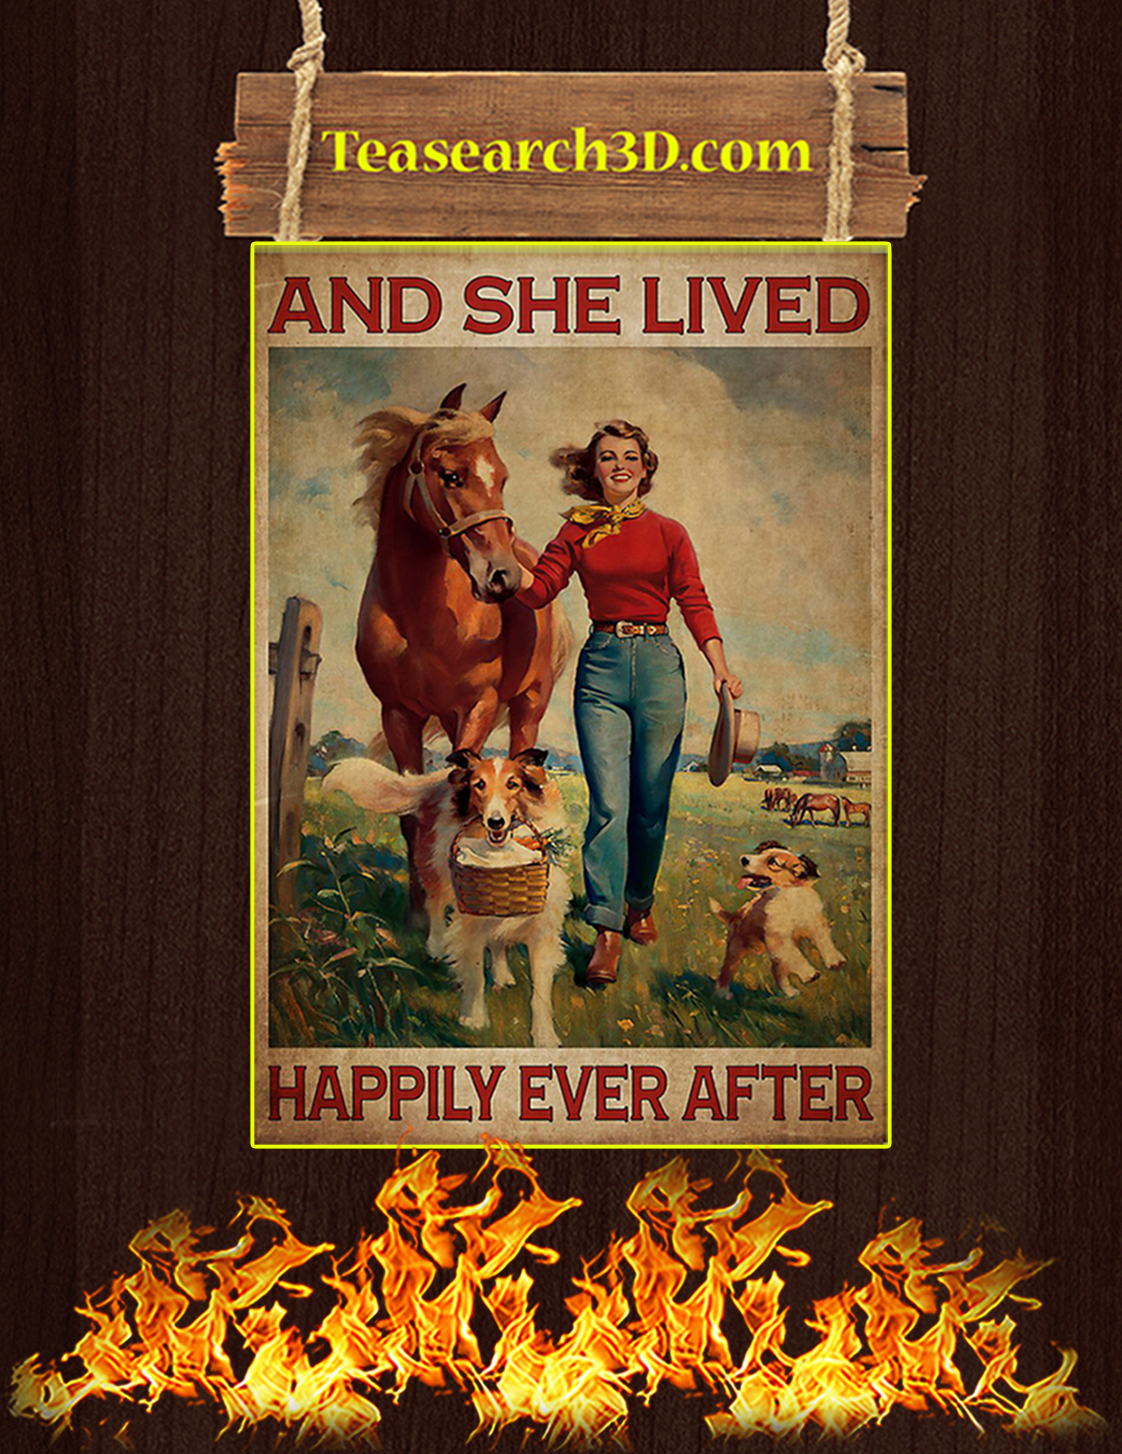 Girl with horse and dogs lived happily ever after poster A3